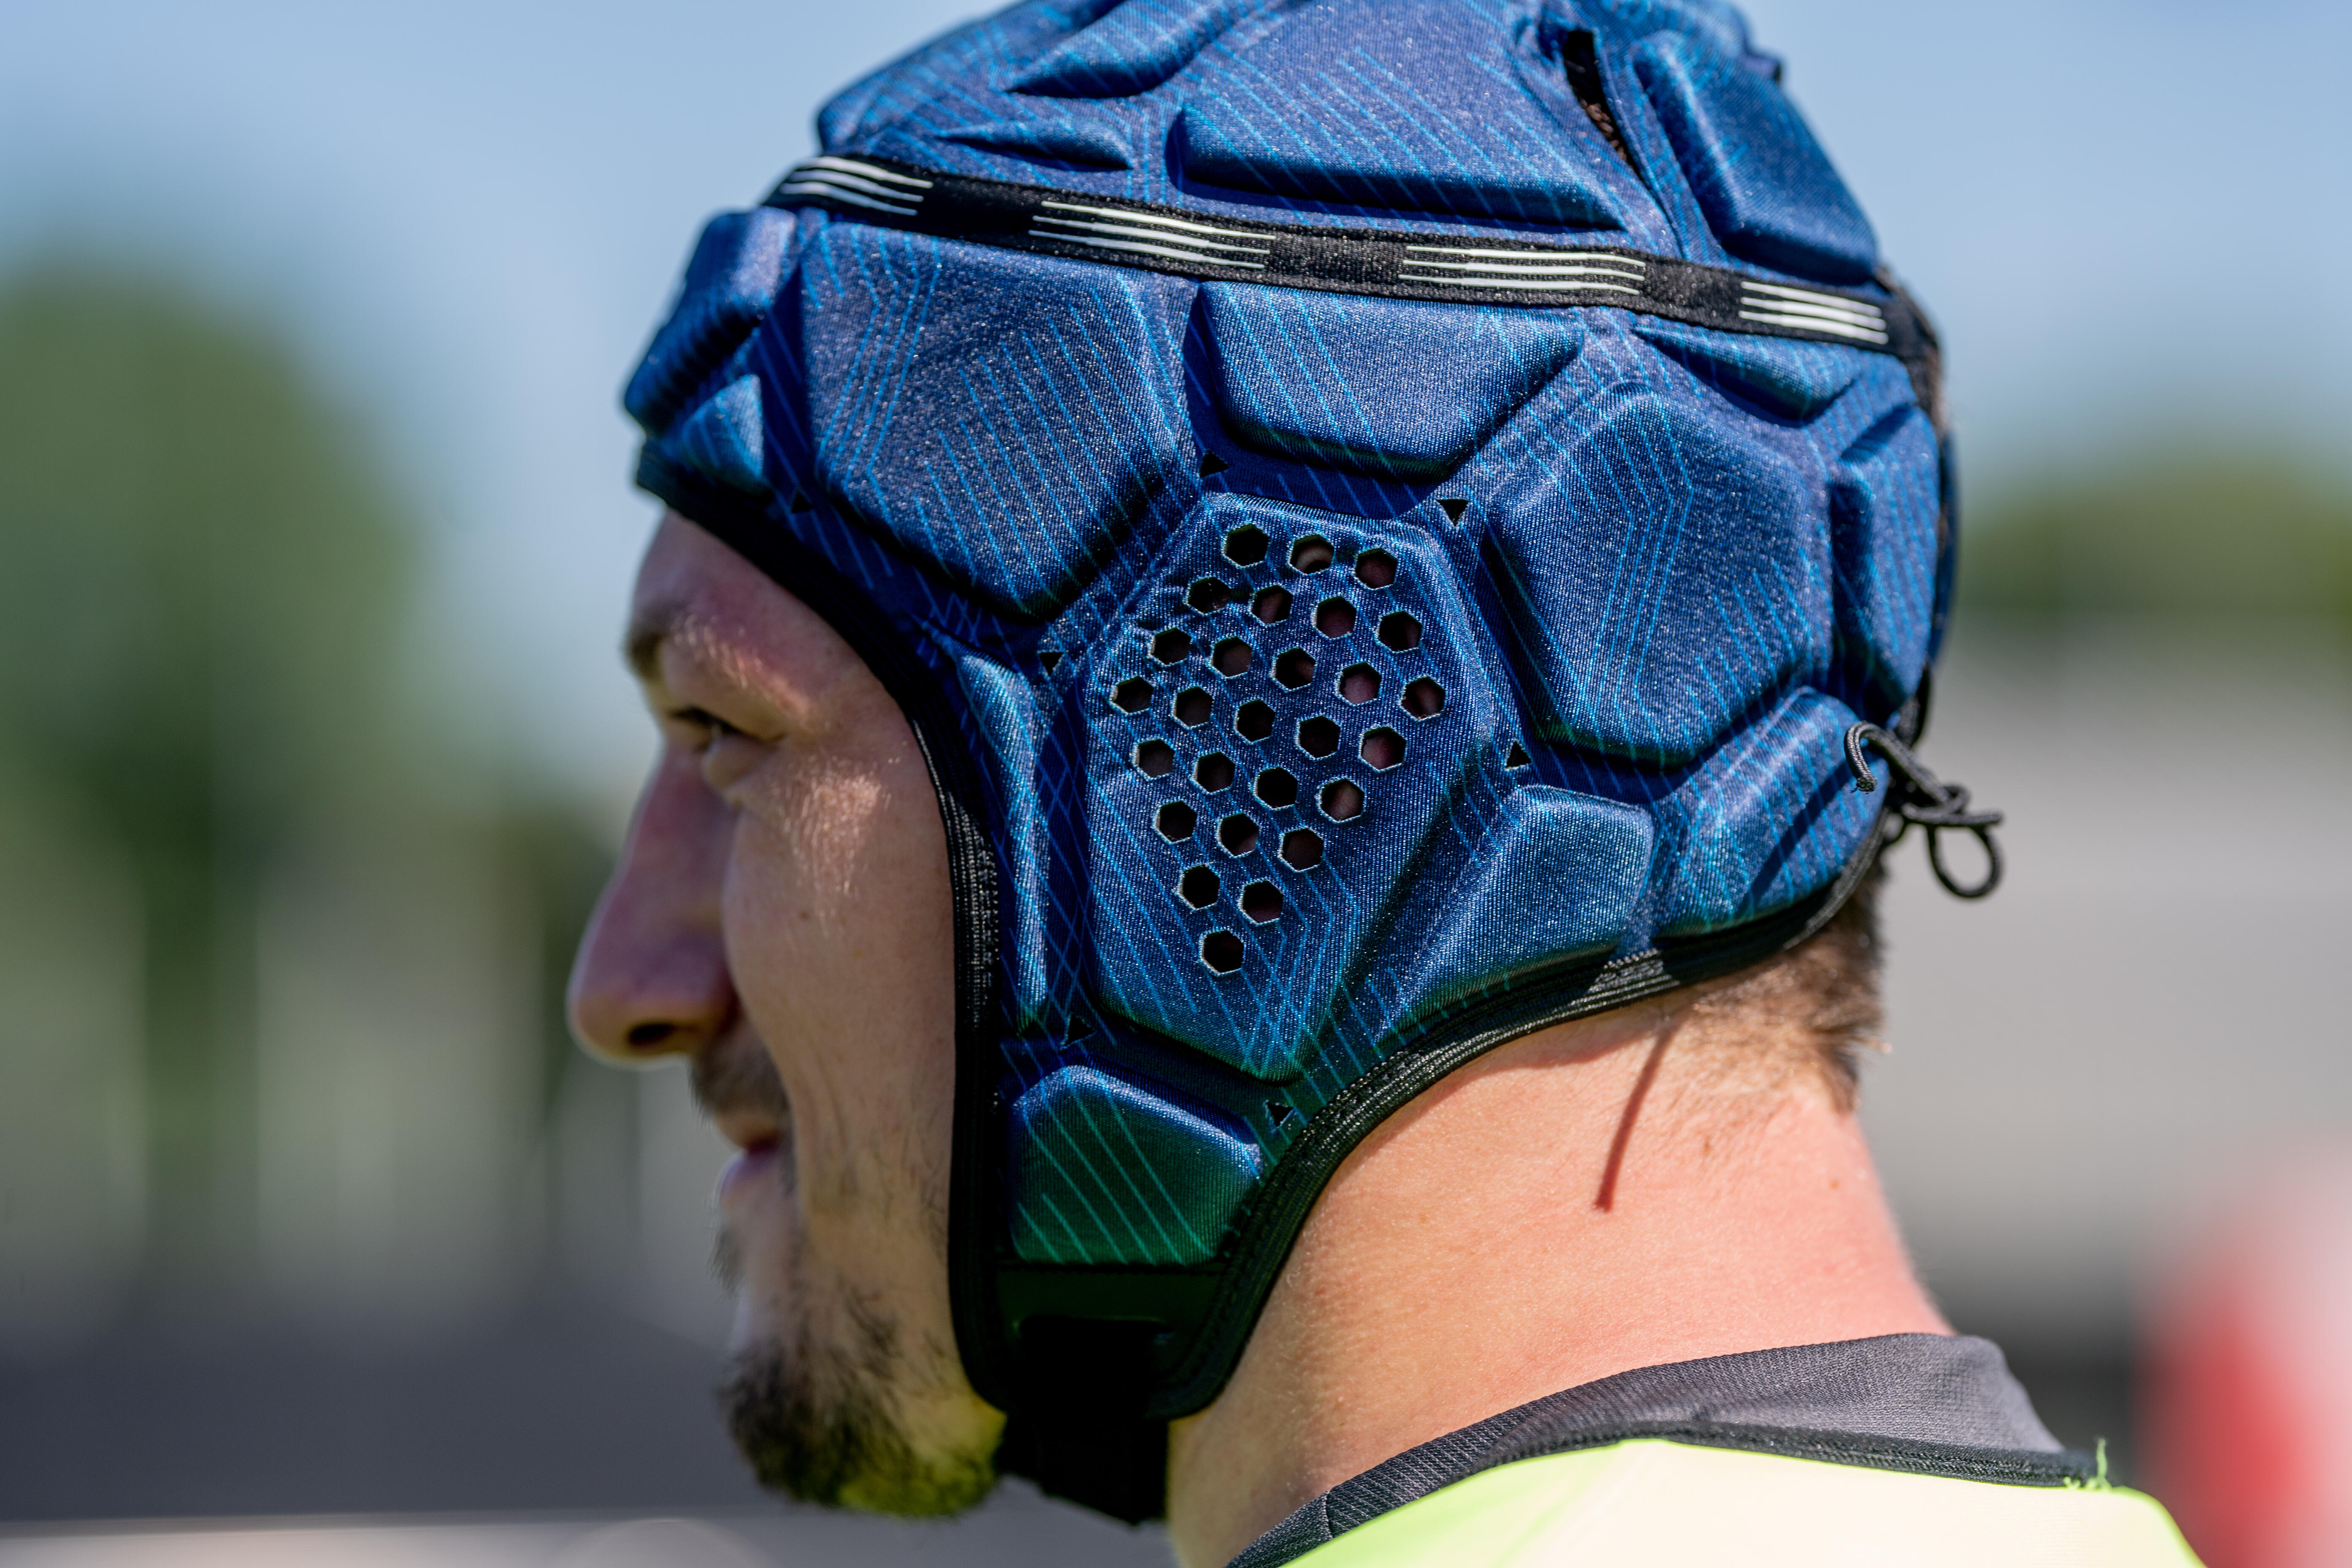 Nos protections de rugby